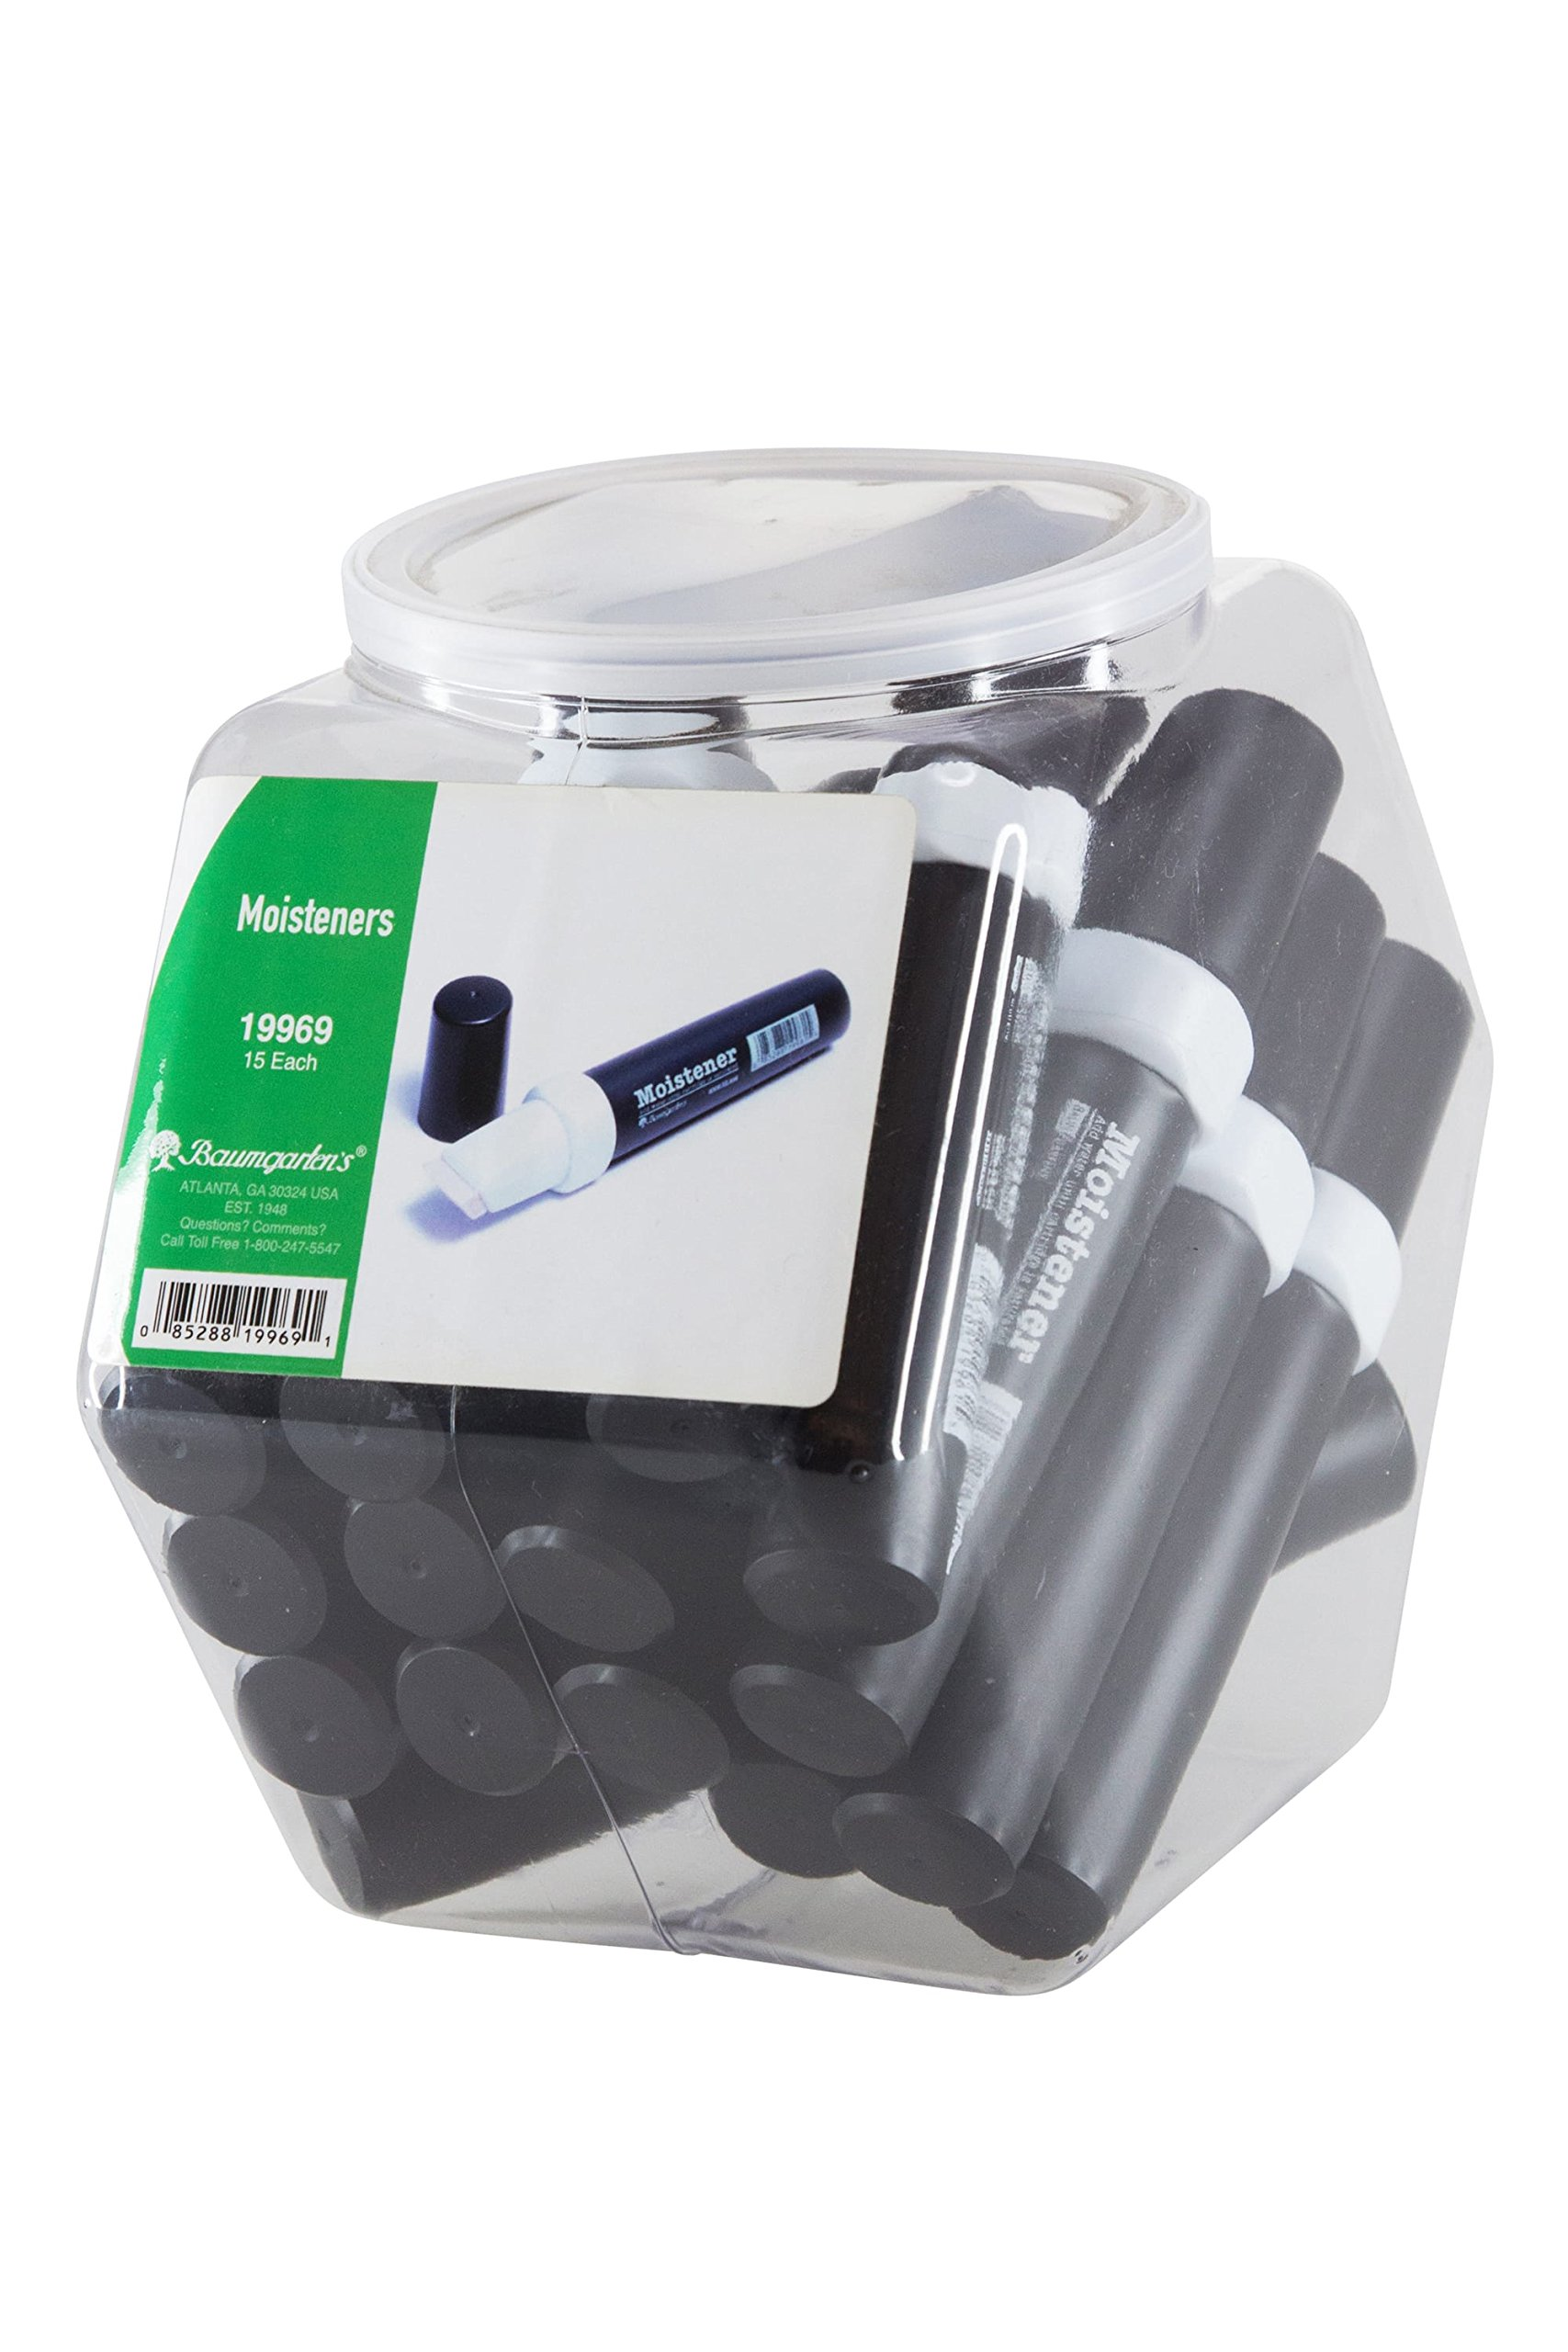 Baumgartens Finger Moistener Hexagonal Tub Display of 15 BLACK (19969)